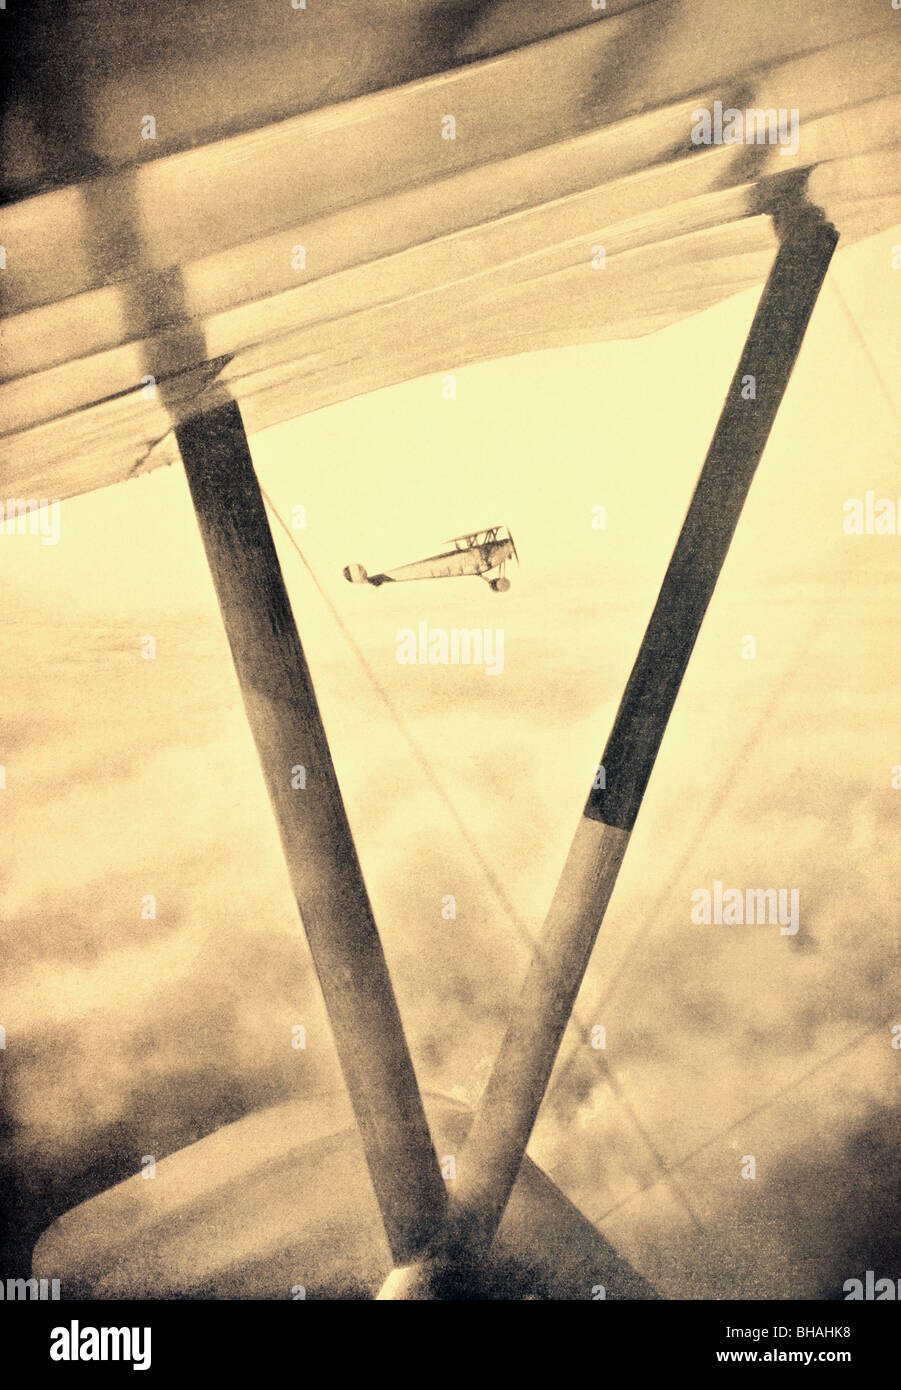 French aircraft on patrol during the First World War. - Stock Image